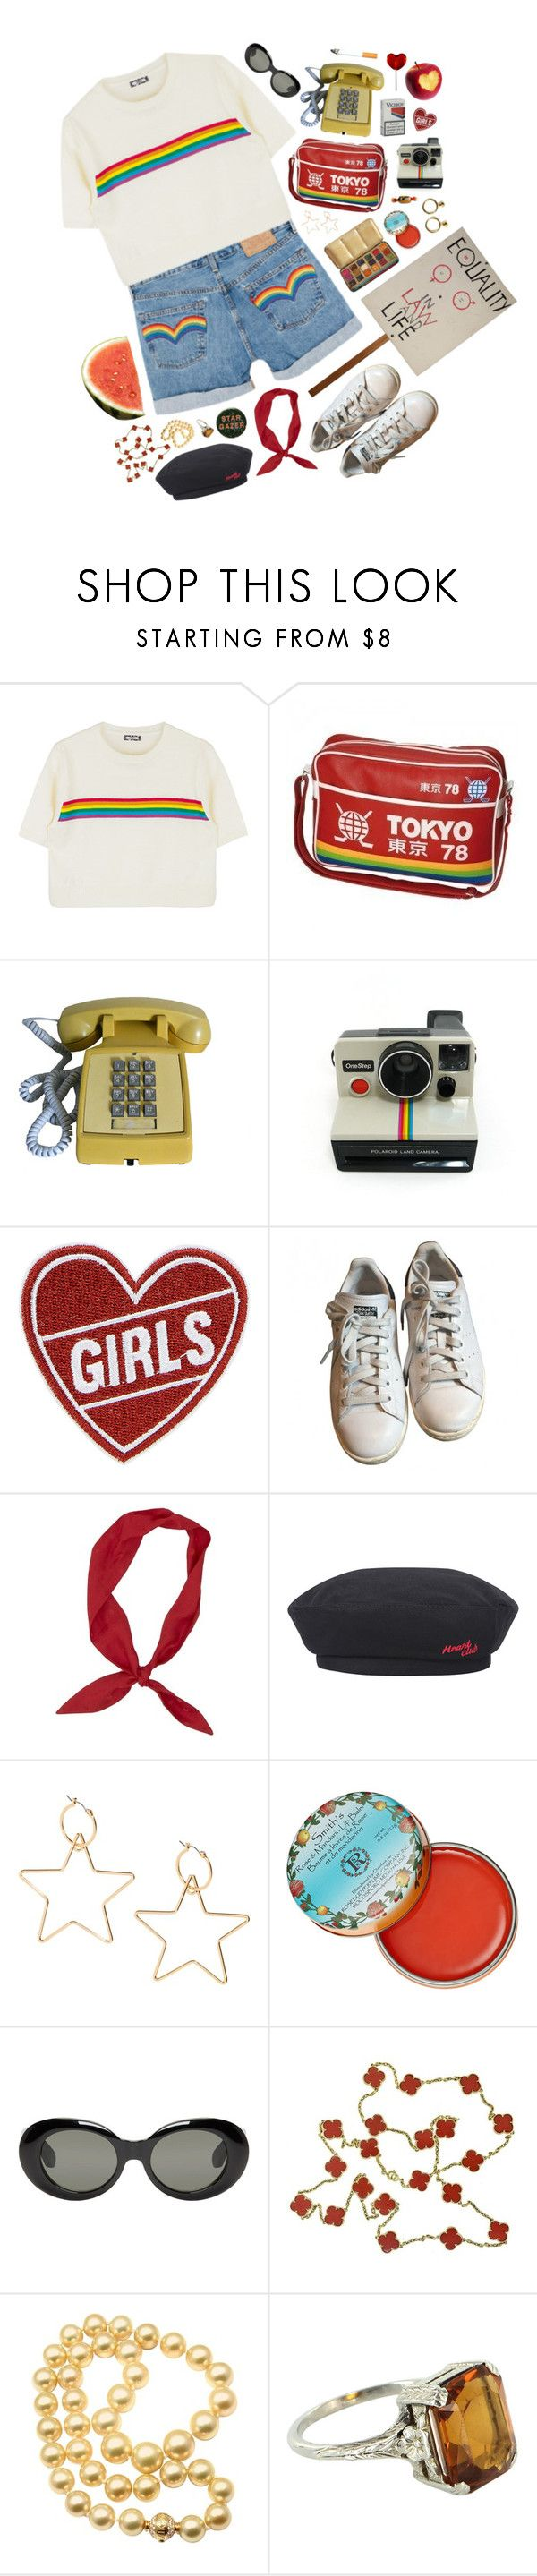 """""""equality matters"""" by pixiekeen ❤ liked on Polyvore featuring Polaroid, adidas, Rosebud Perfume Co., Acne Studios, Candie's, Amy Winehouse, LIST, Van Cleef & Arpels, Forum and Mikimoto"""